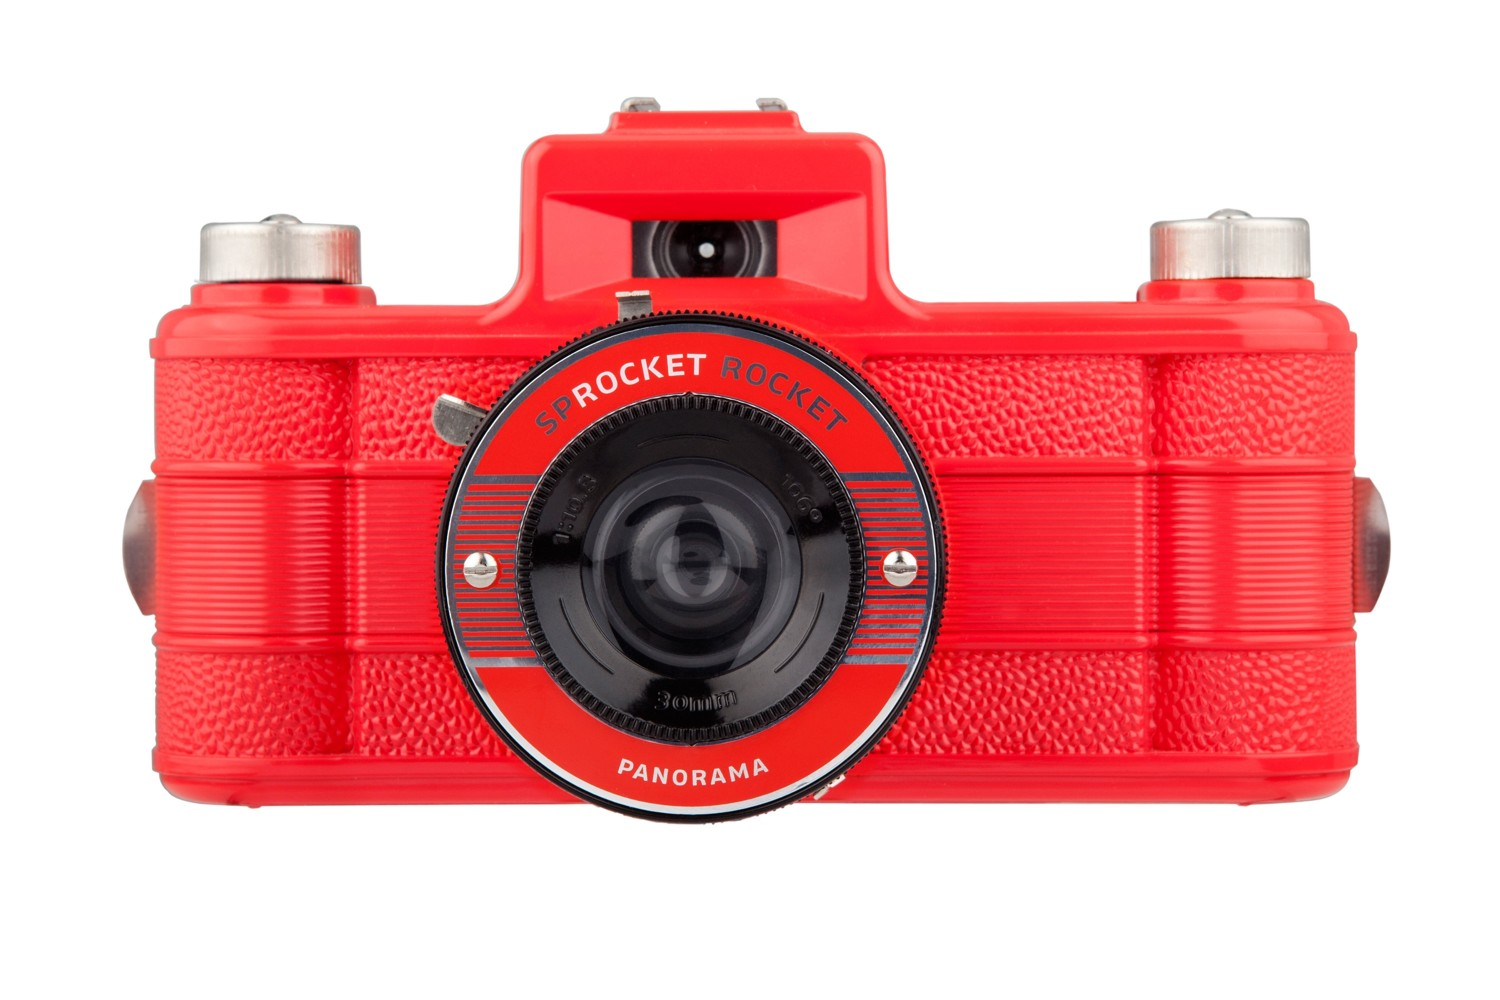 Sprocket Rocket Red 2.0 齒孔寬景相機